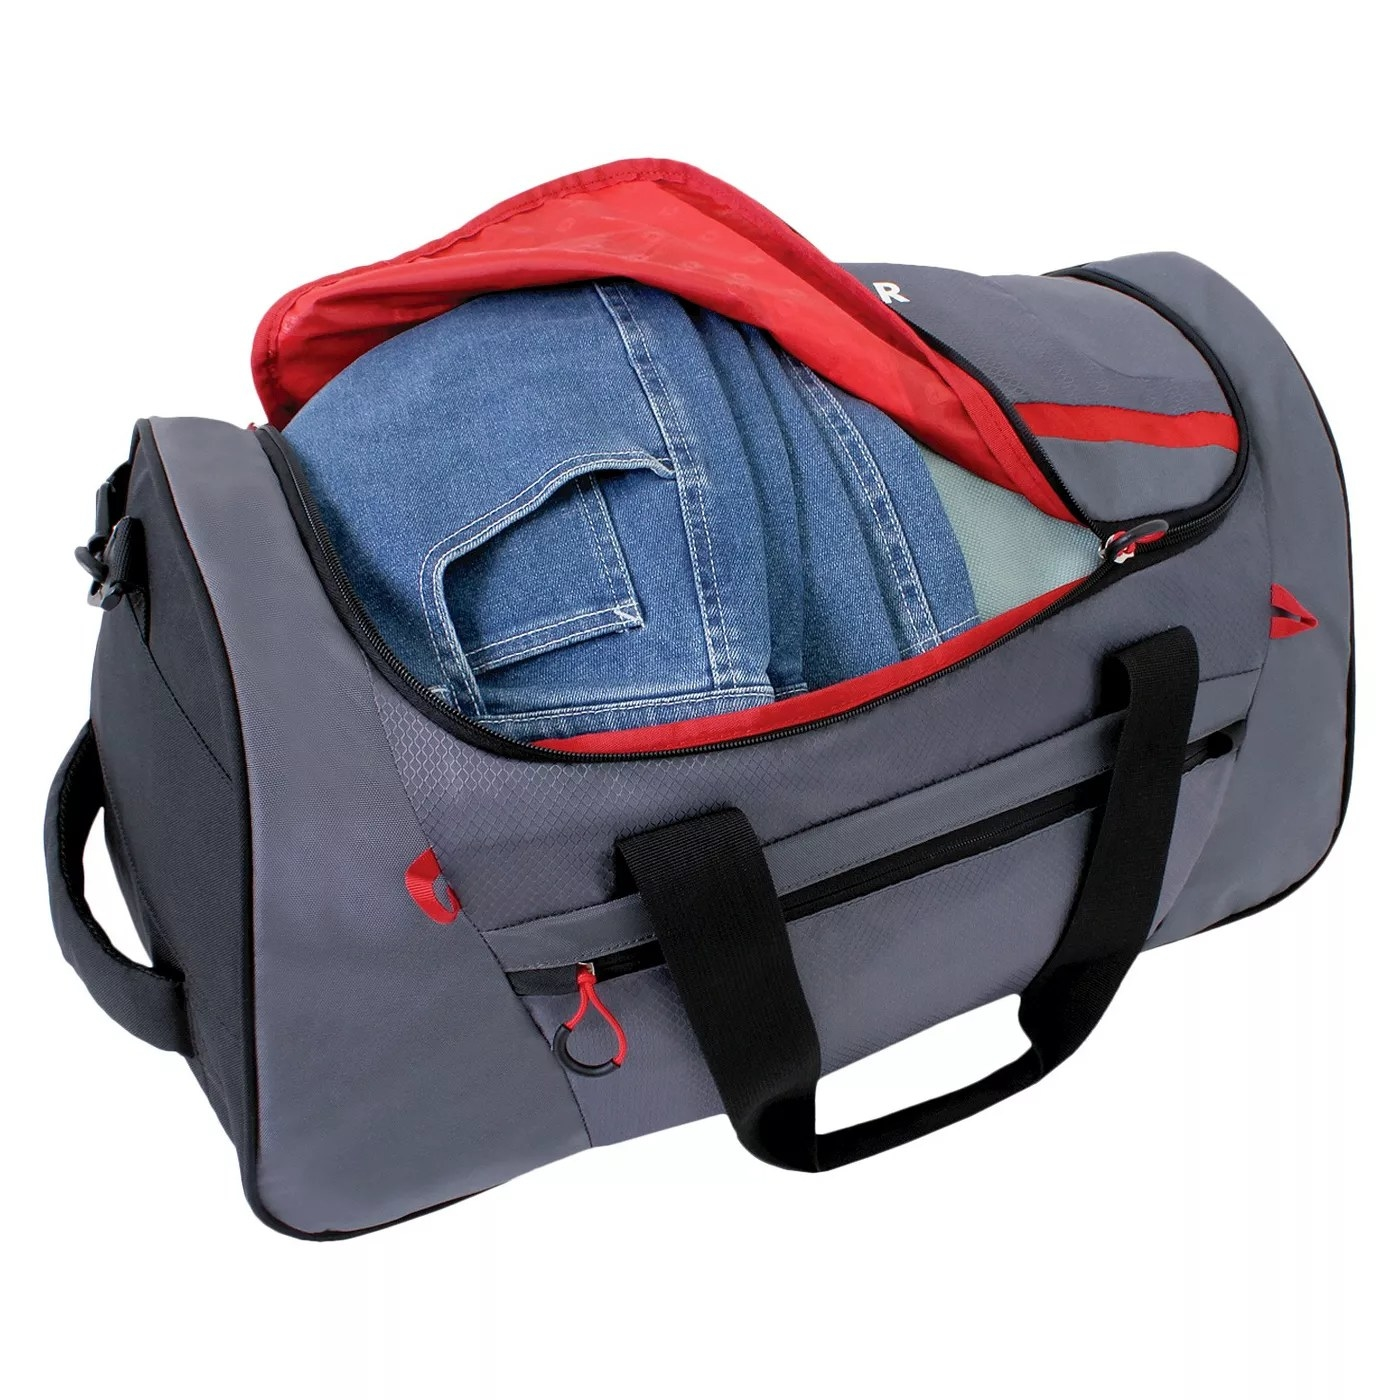 The gray and red SWISSGEAR duffel bag